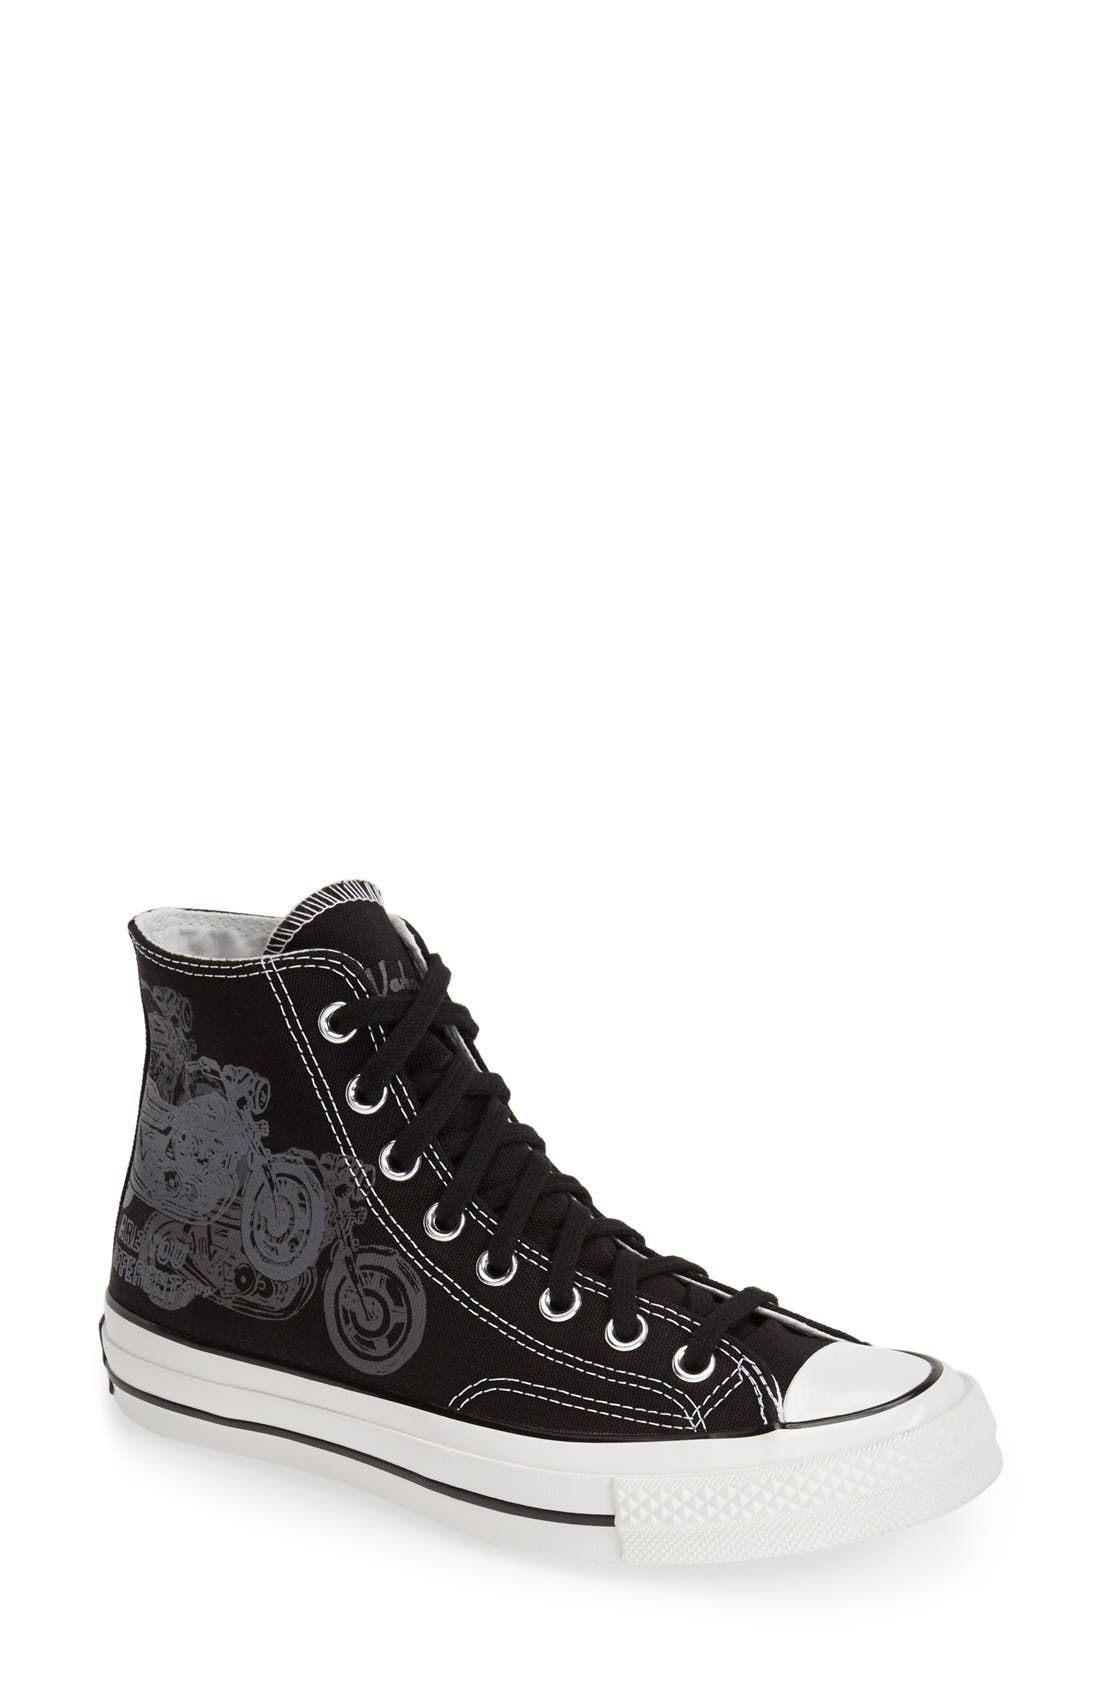 Alternate Image 1 Selected - Converse Chuck Taylor® All Star® '70 Andy Warhol Collection High Top Sneaker (Women)